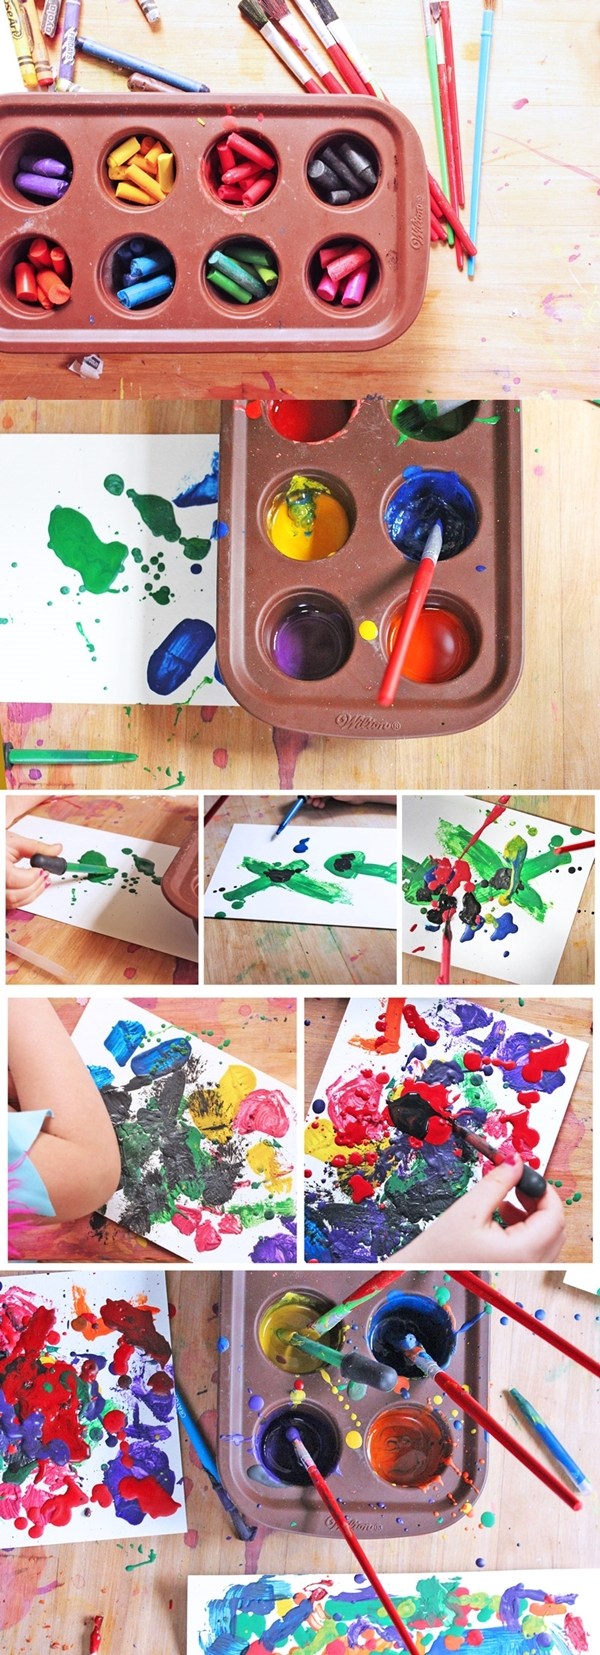 make-paint-crayons-glue